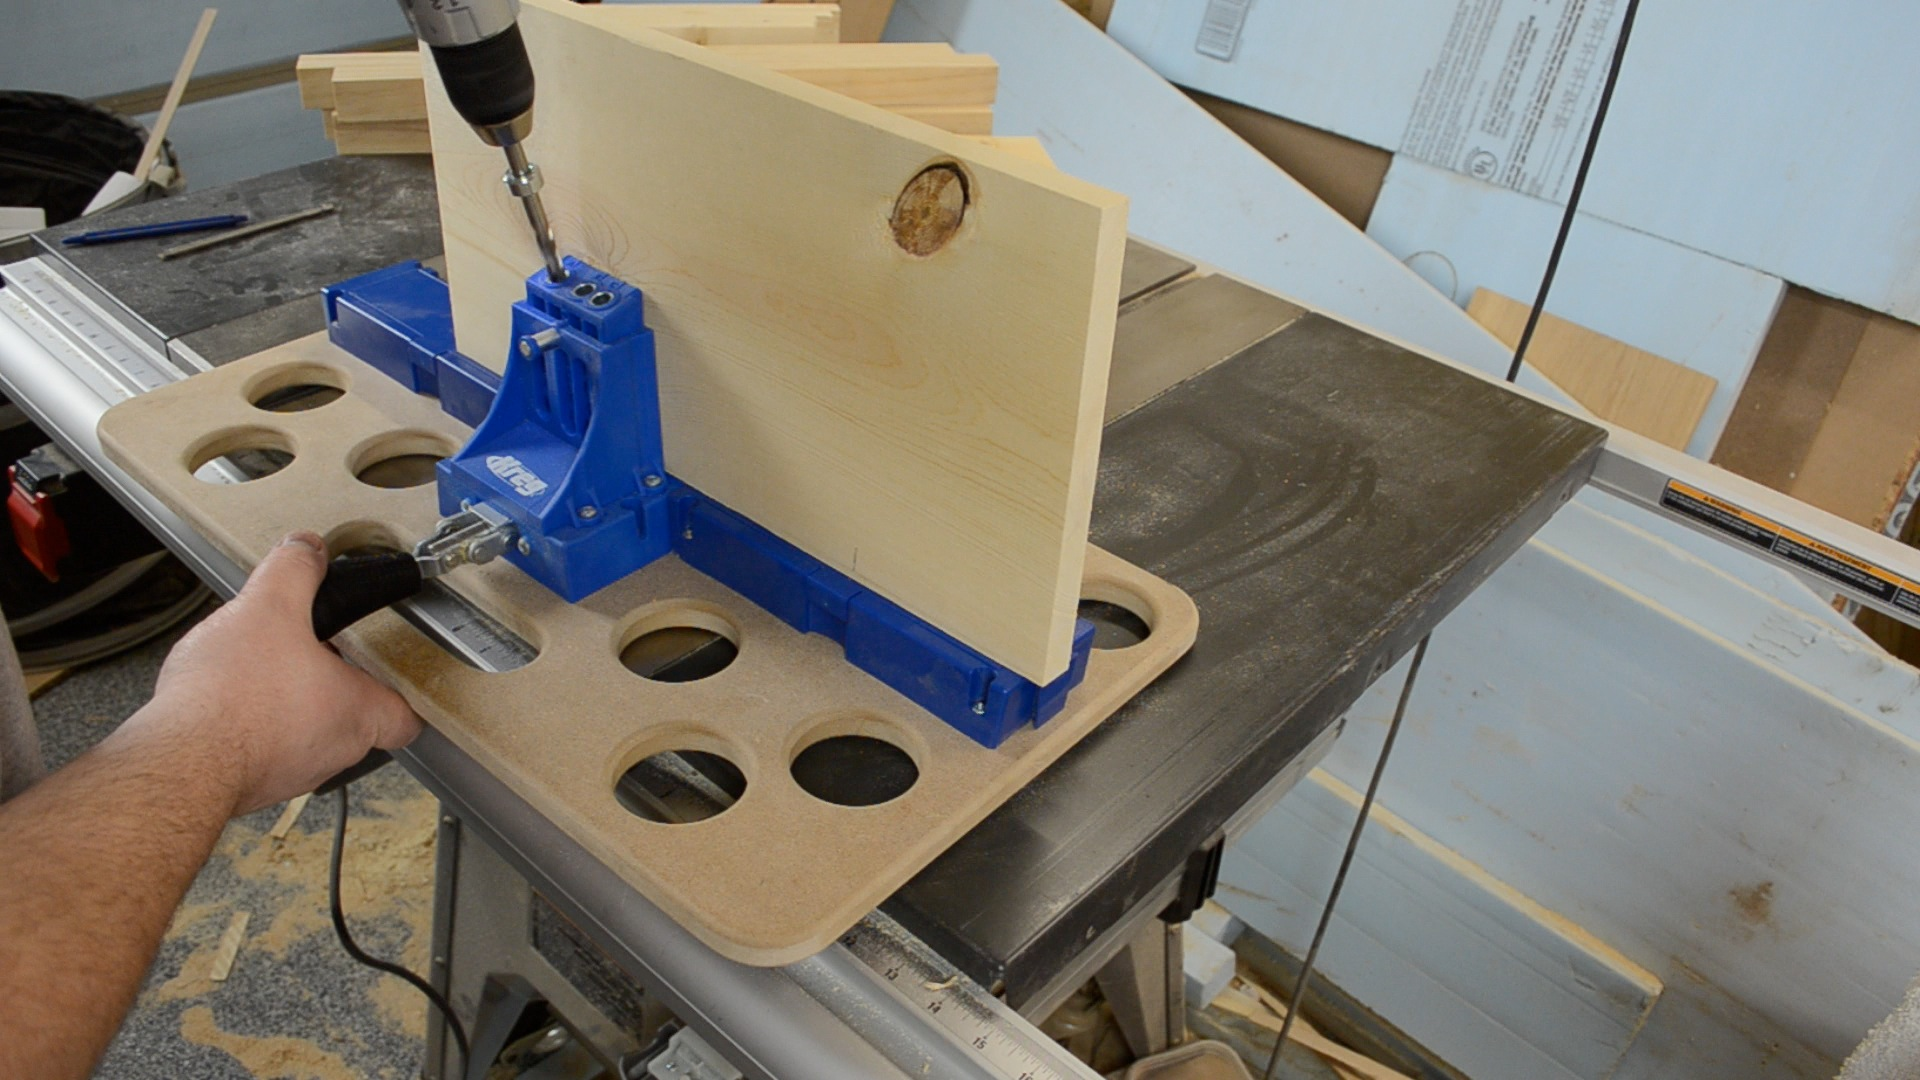 Kreg pocket hole router table plans best router 2017 21 fantastic woodworking table with holes egorlin kreg pocket hole plans cool building woodworking bench large version router keyboard keysfo Image collections